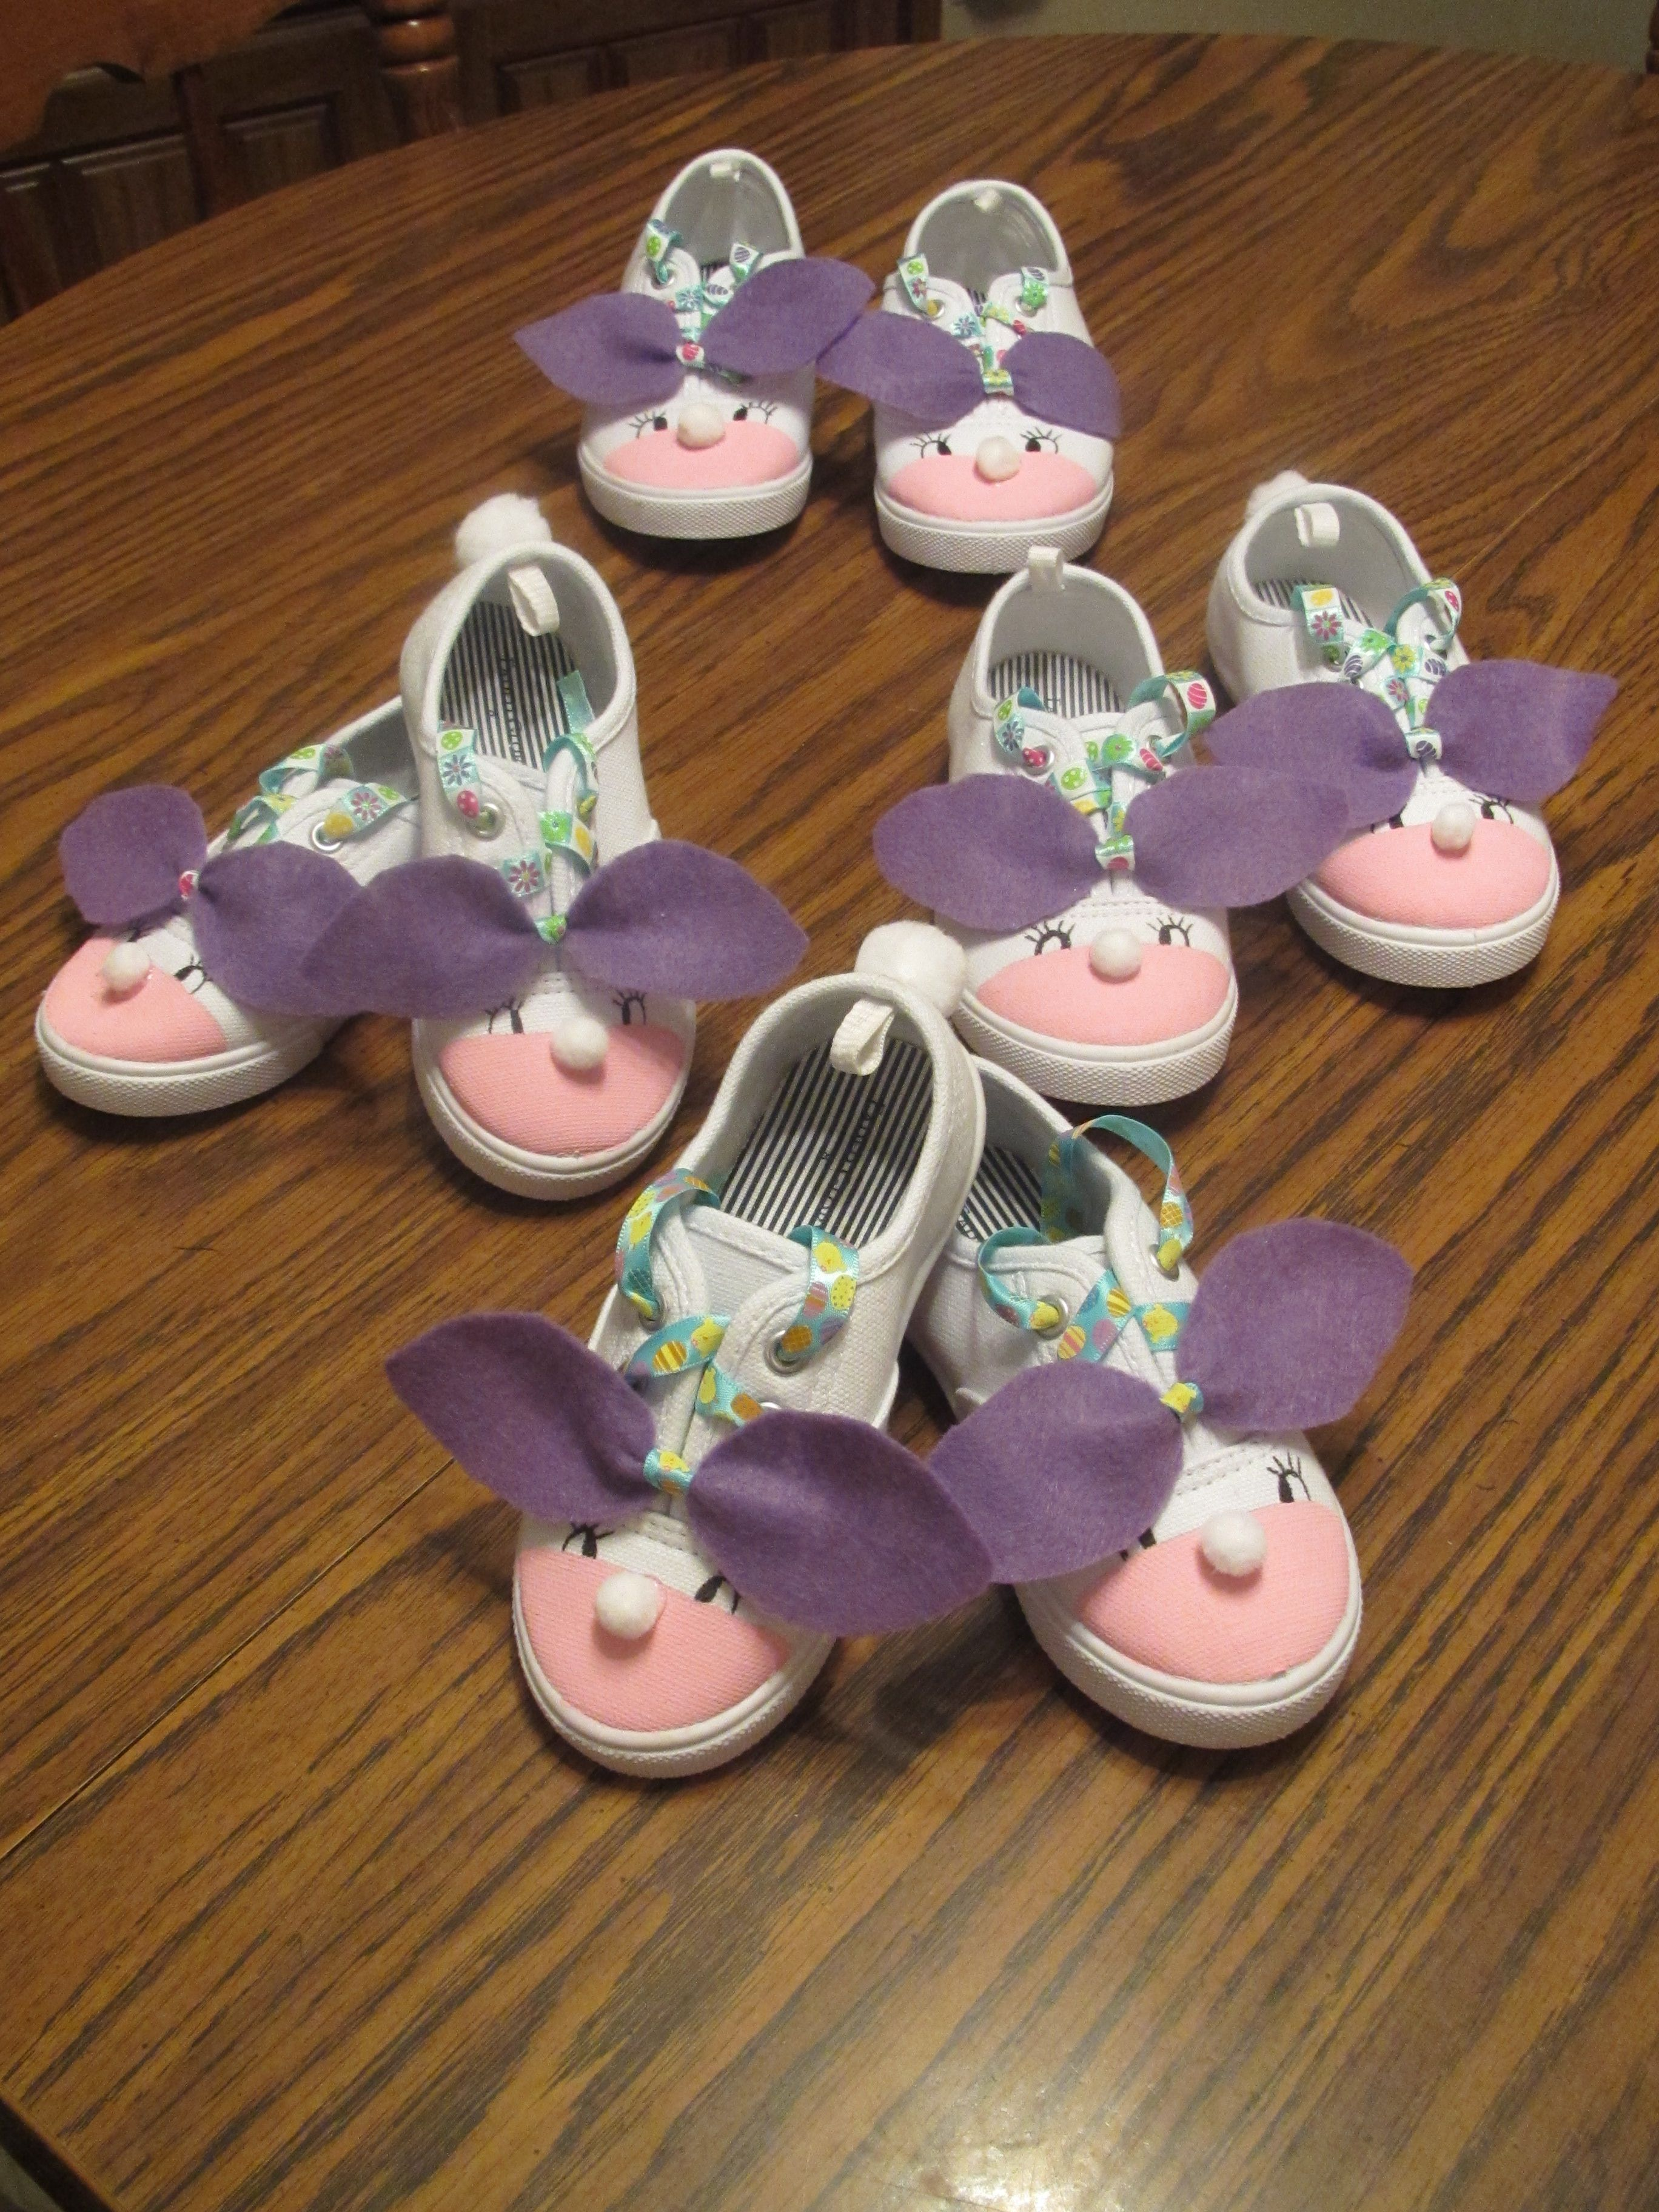 Diy For Kids: Bunny Shoes Paint Sneaker's Tips Pink, Use Permanent Marker To